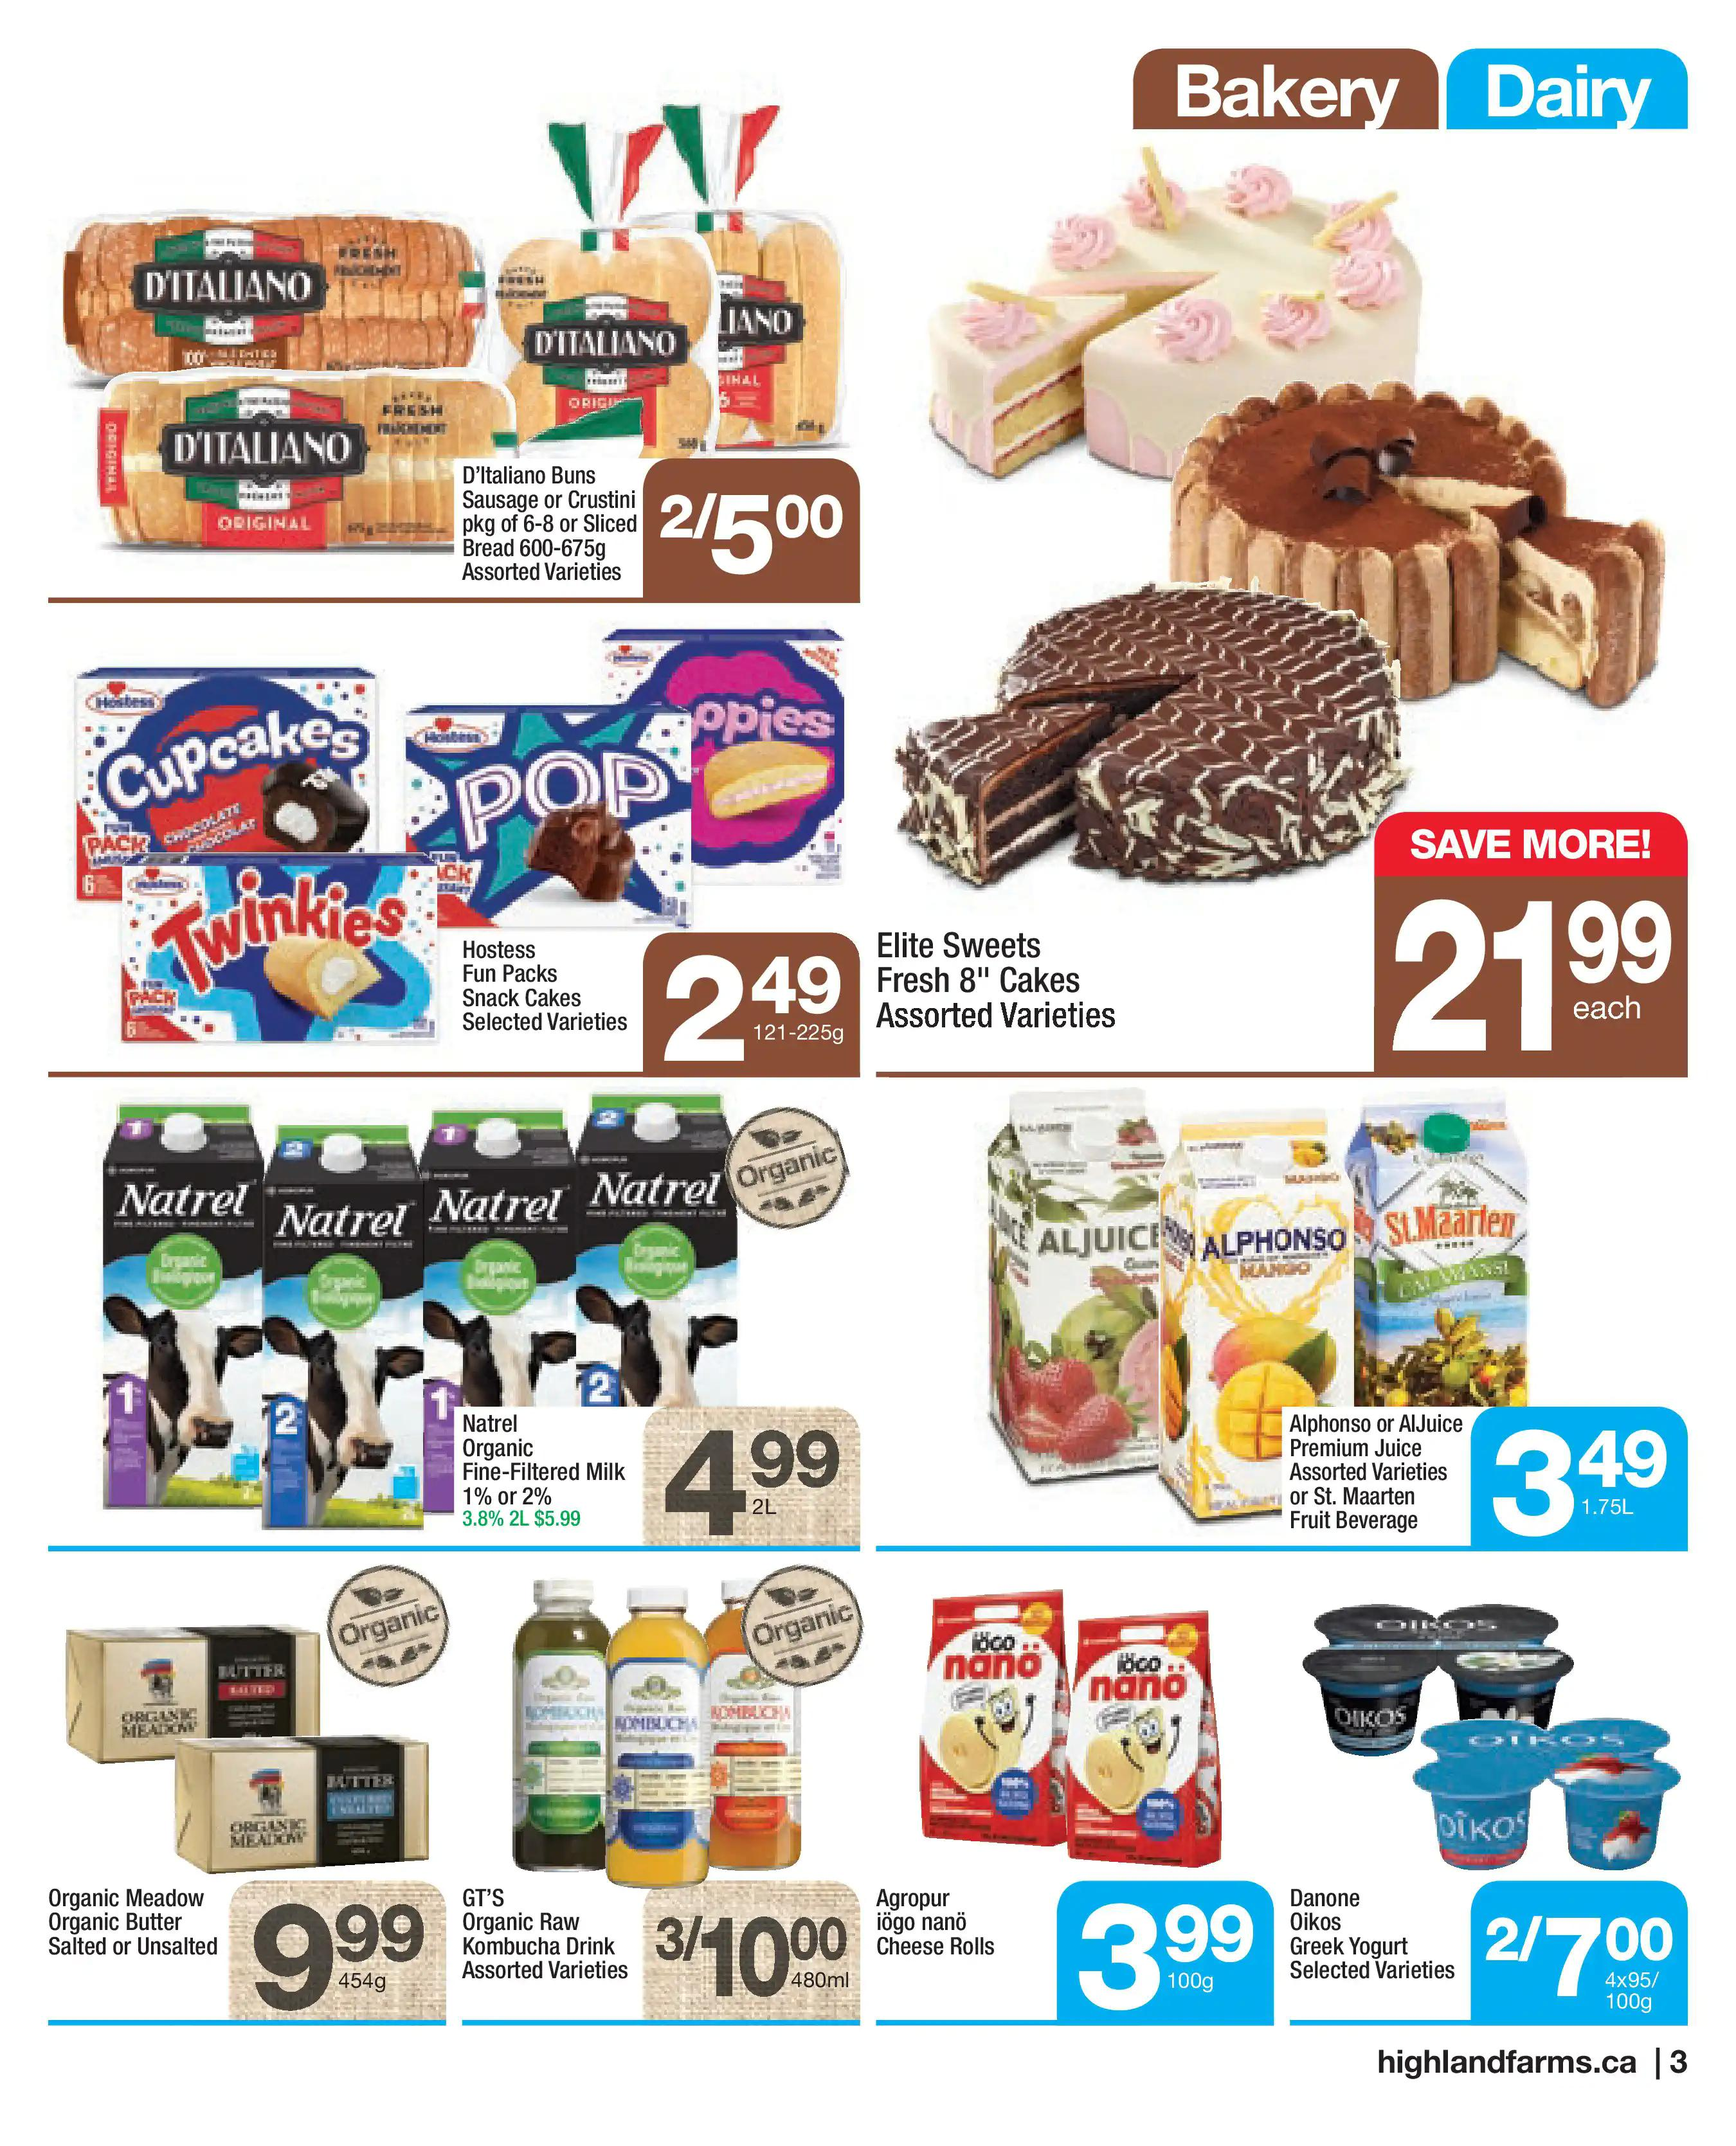 Highland Farms - Weekly Flyer Specials - Page 3